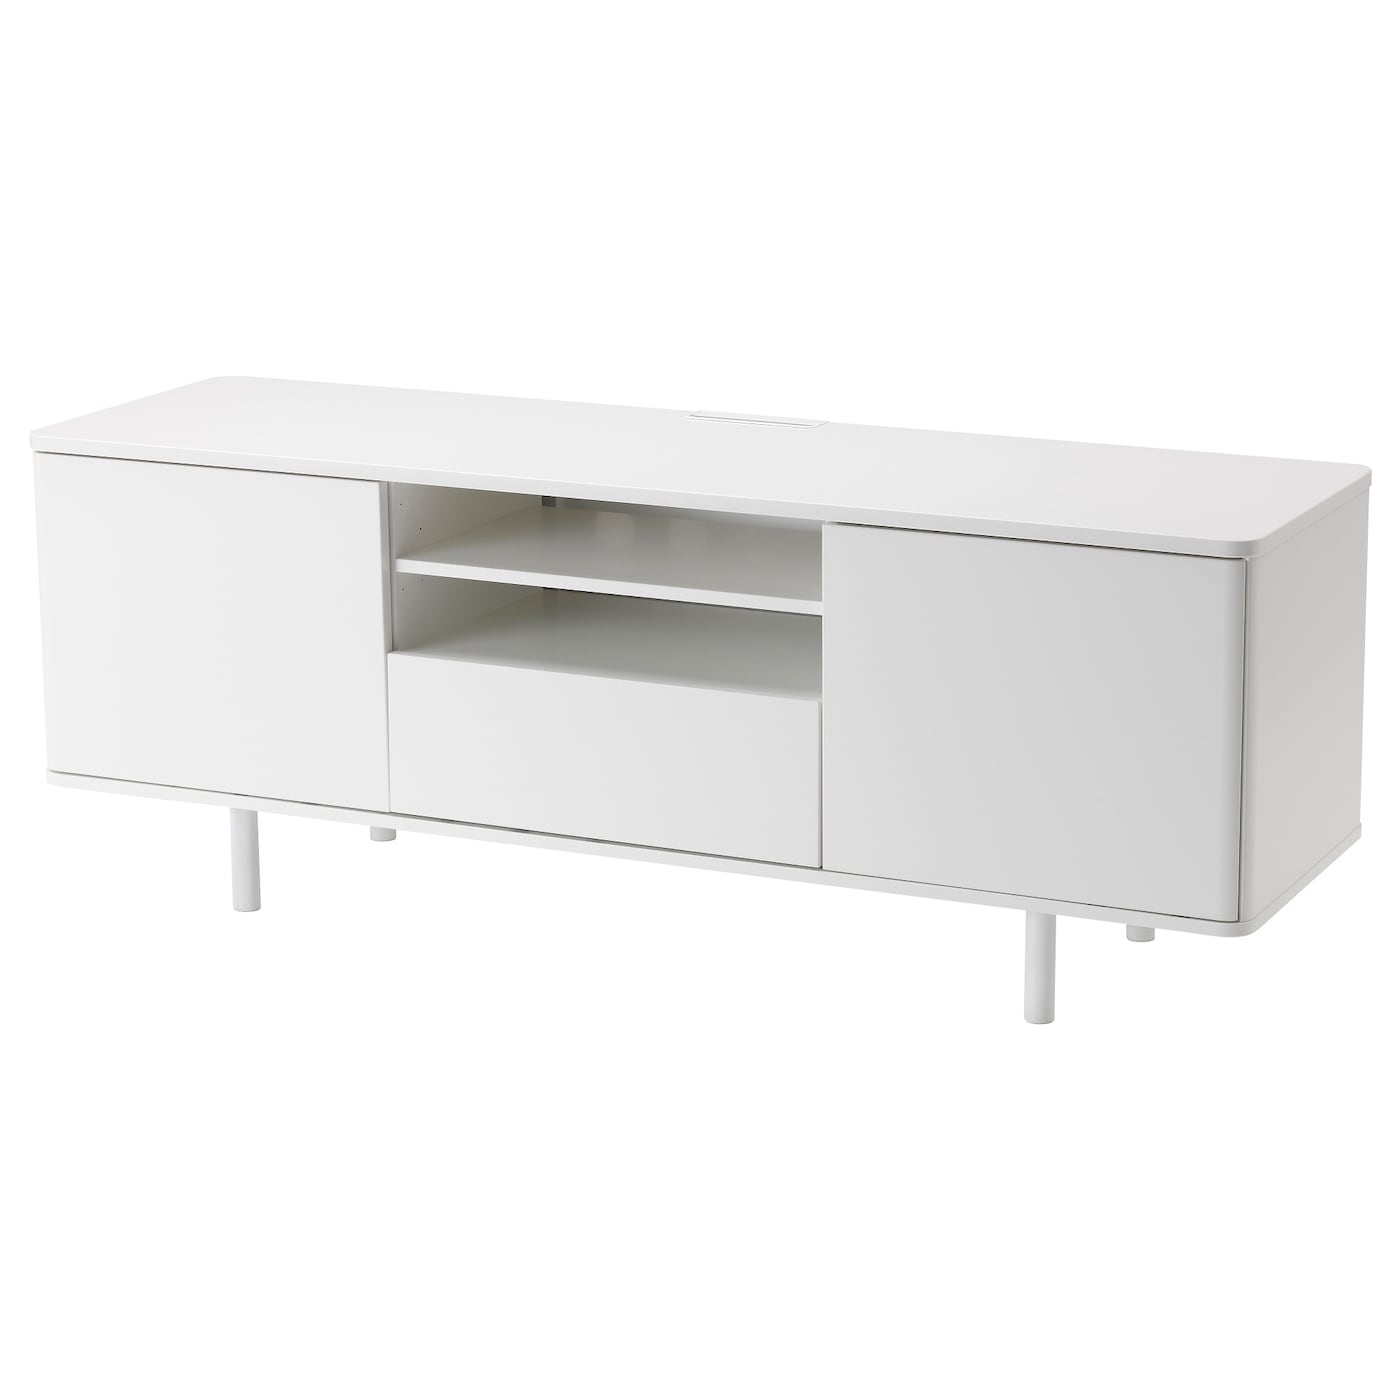 IKEA MOSTORP TV bench